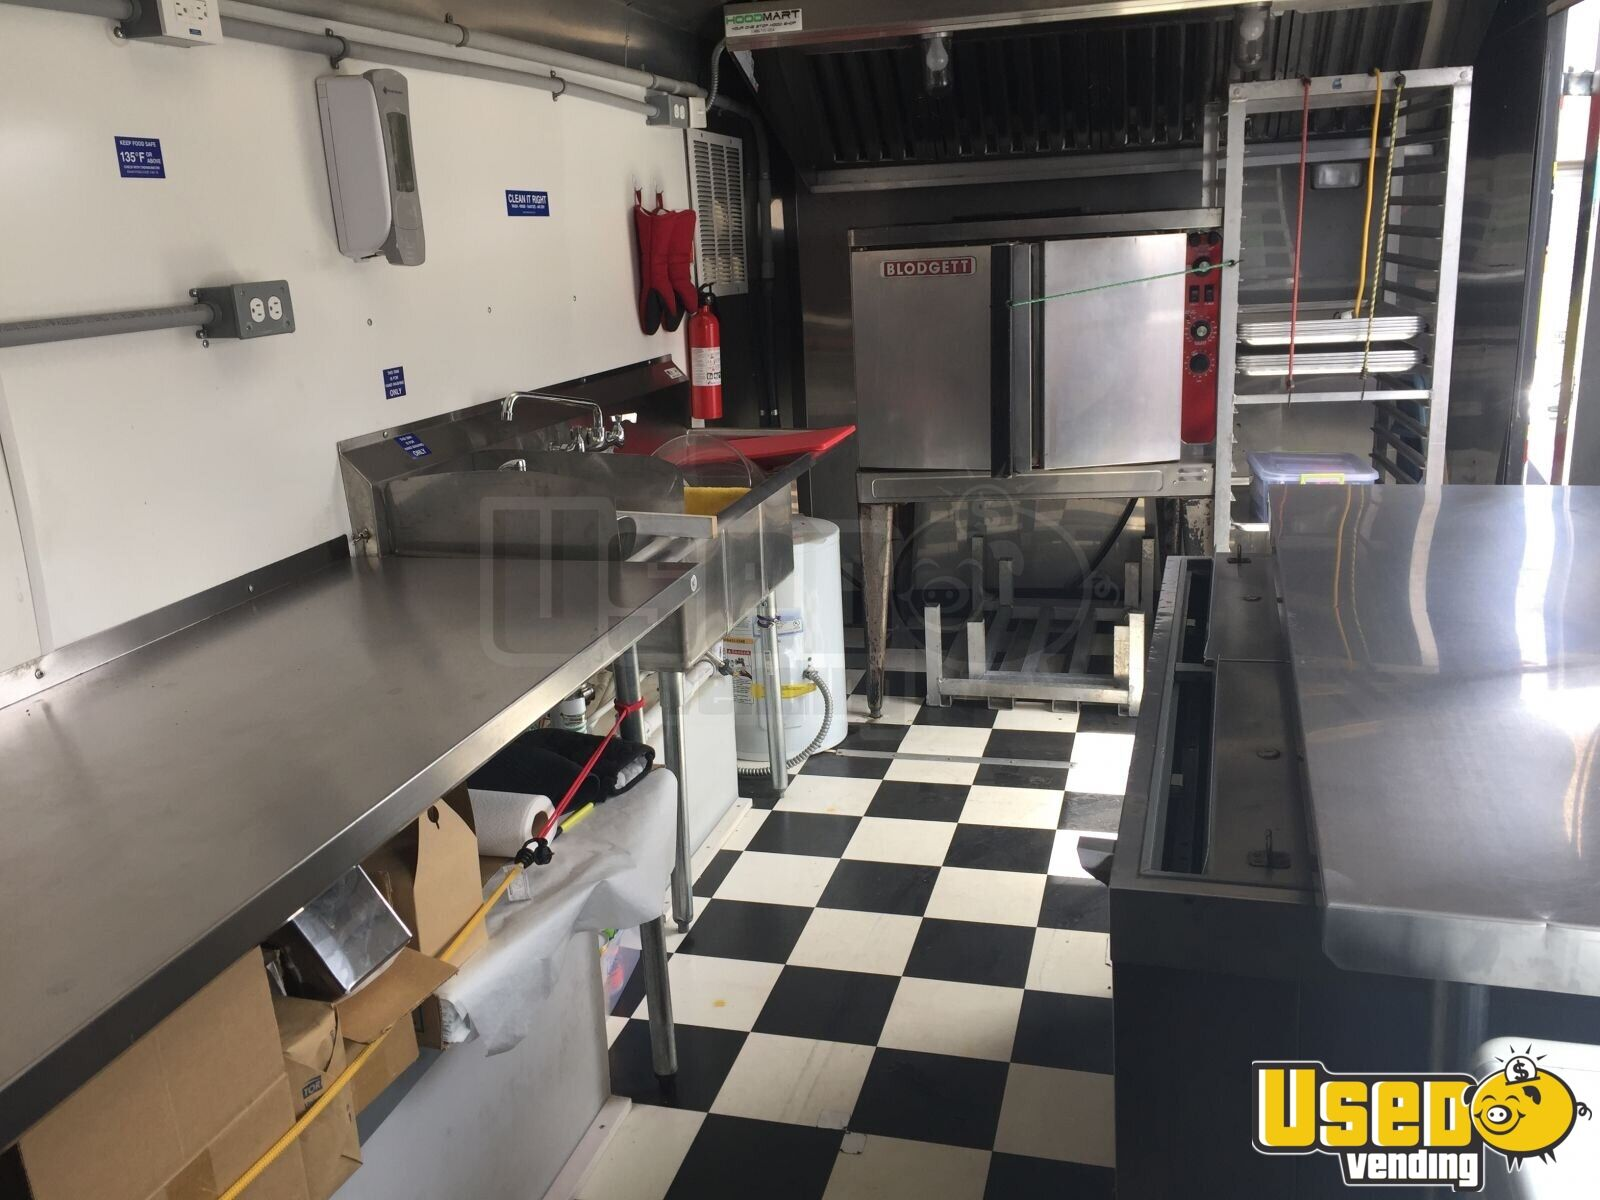 16 X 8 Mobile Bakery Kitchen Trailer For Sale In Idaho